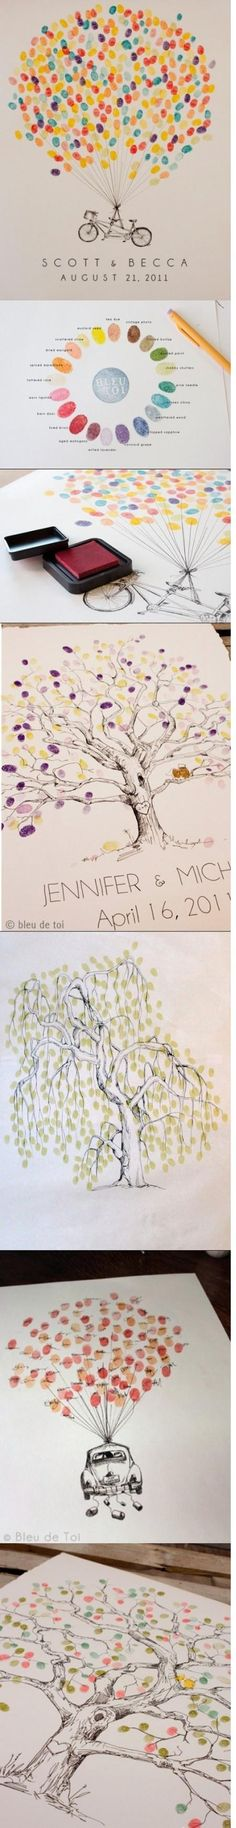 Fingerprint art for a wedding as the guest book love this idea bummer I've had my wedding I would do this. Wedding Guest Book, Our Wedding, Dream Wedding, Wedding Signs, Trendy Wedding, Wedding Reception, Rustic Wedding, Wedding Cards, Wedding Events